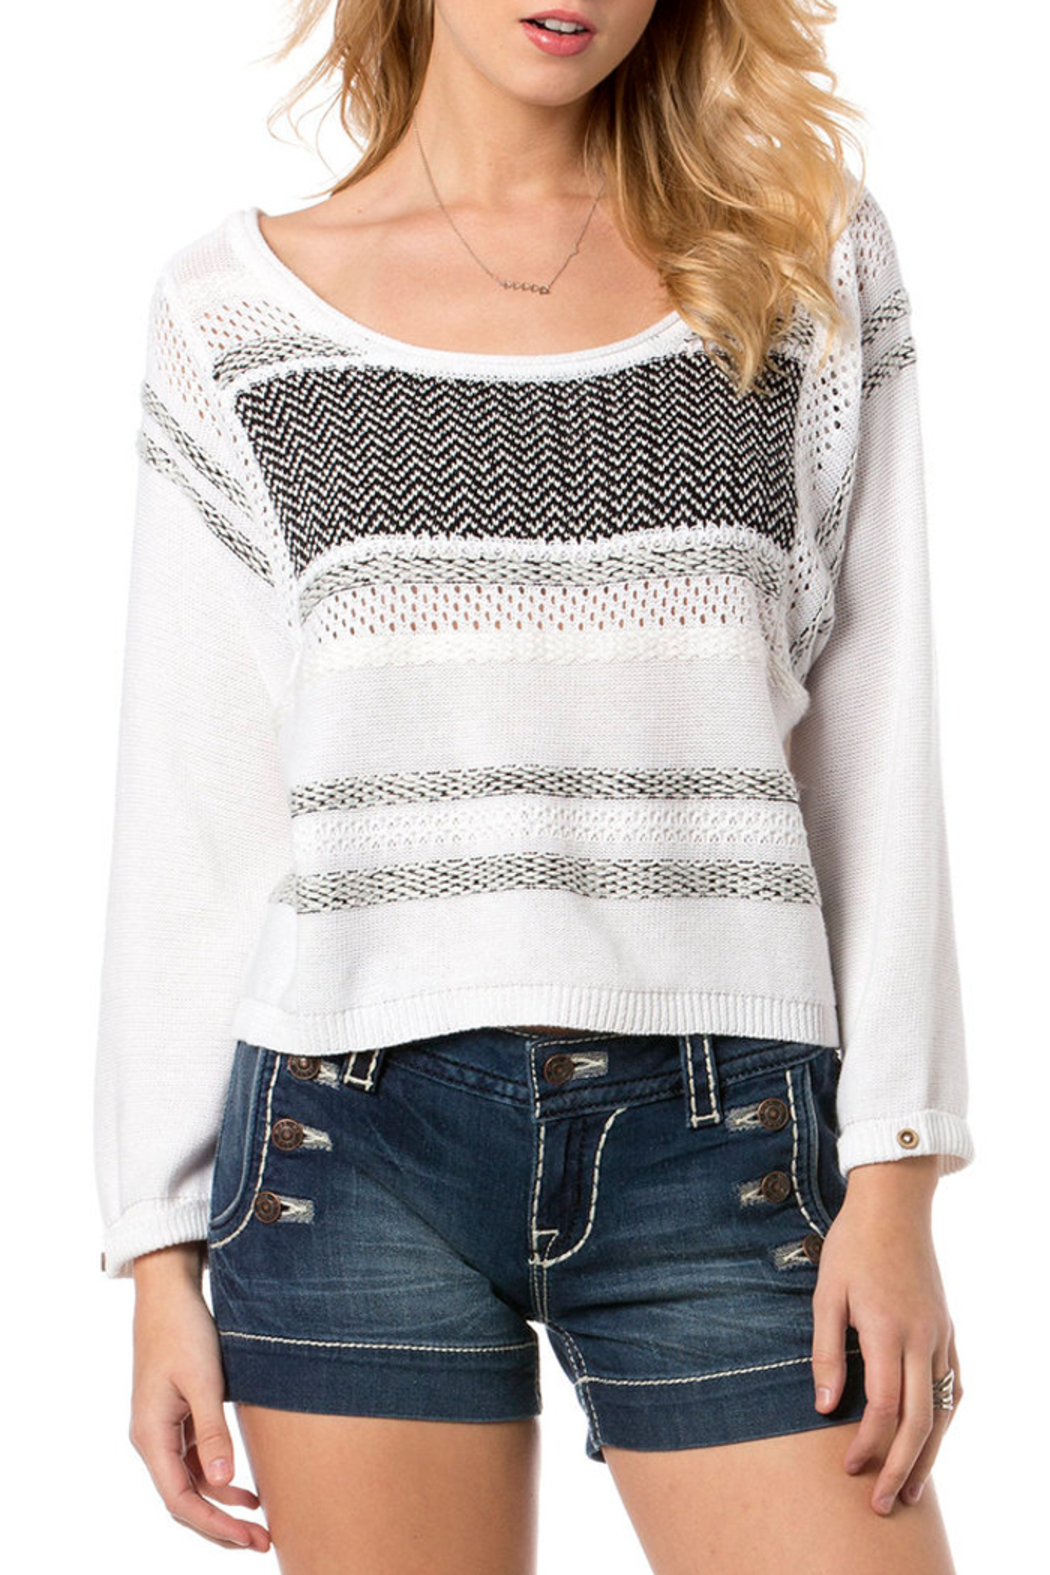 Miss Me White and Black Knit Sweater - Main Image